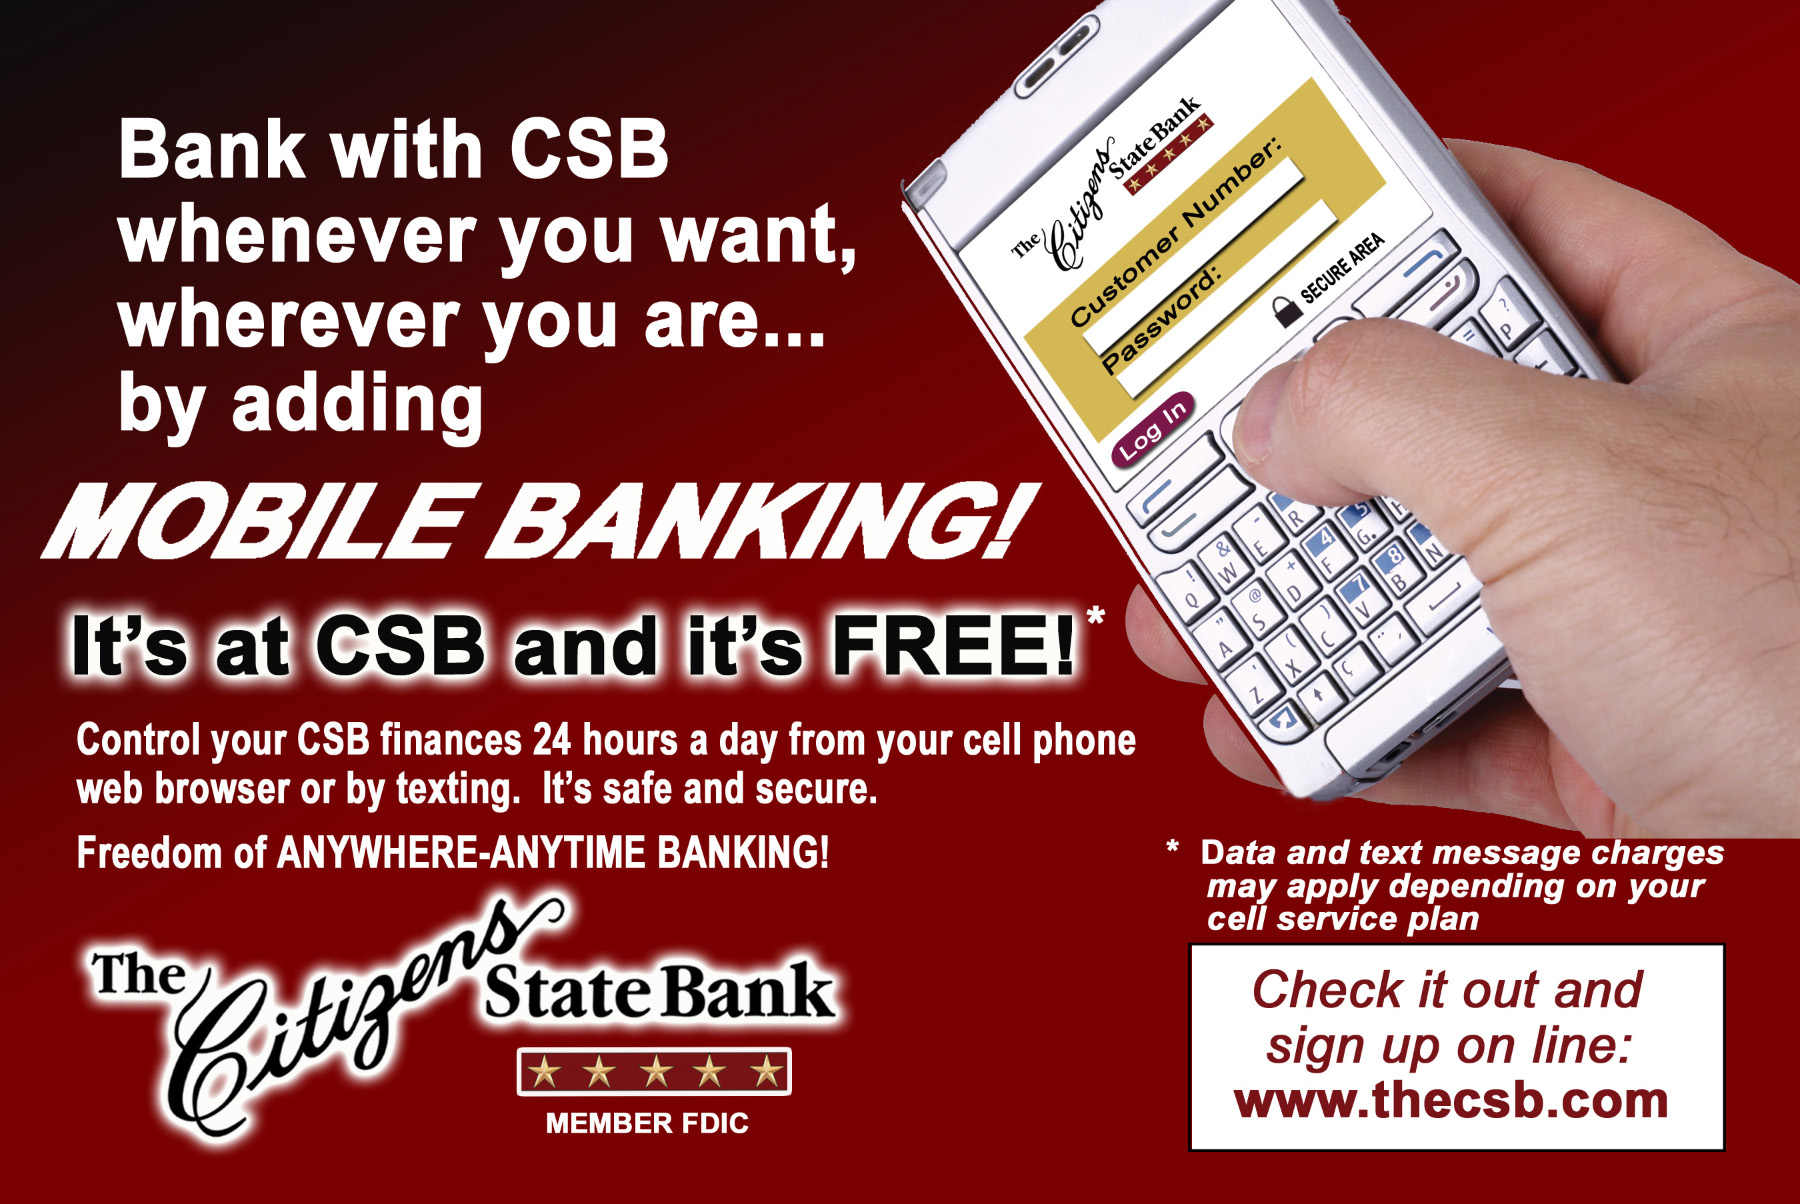 POST-CARD-FOR-MOBILE-BANKING-Aug.-30-copy